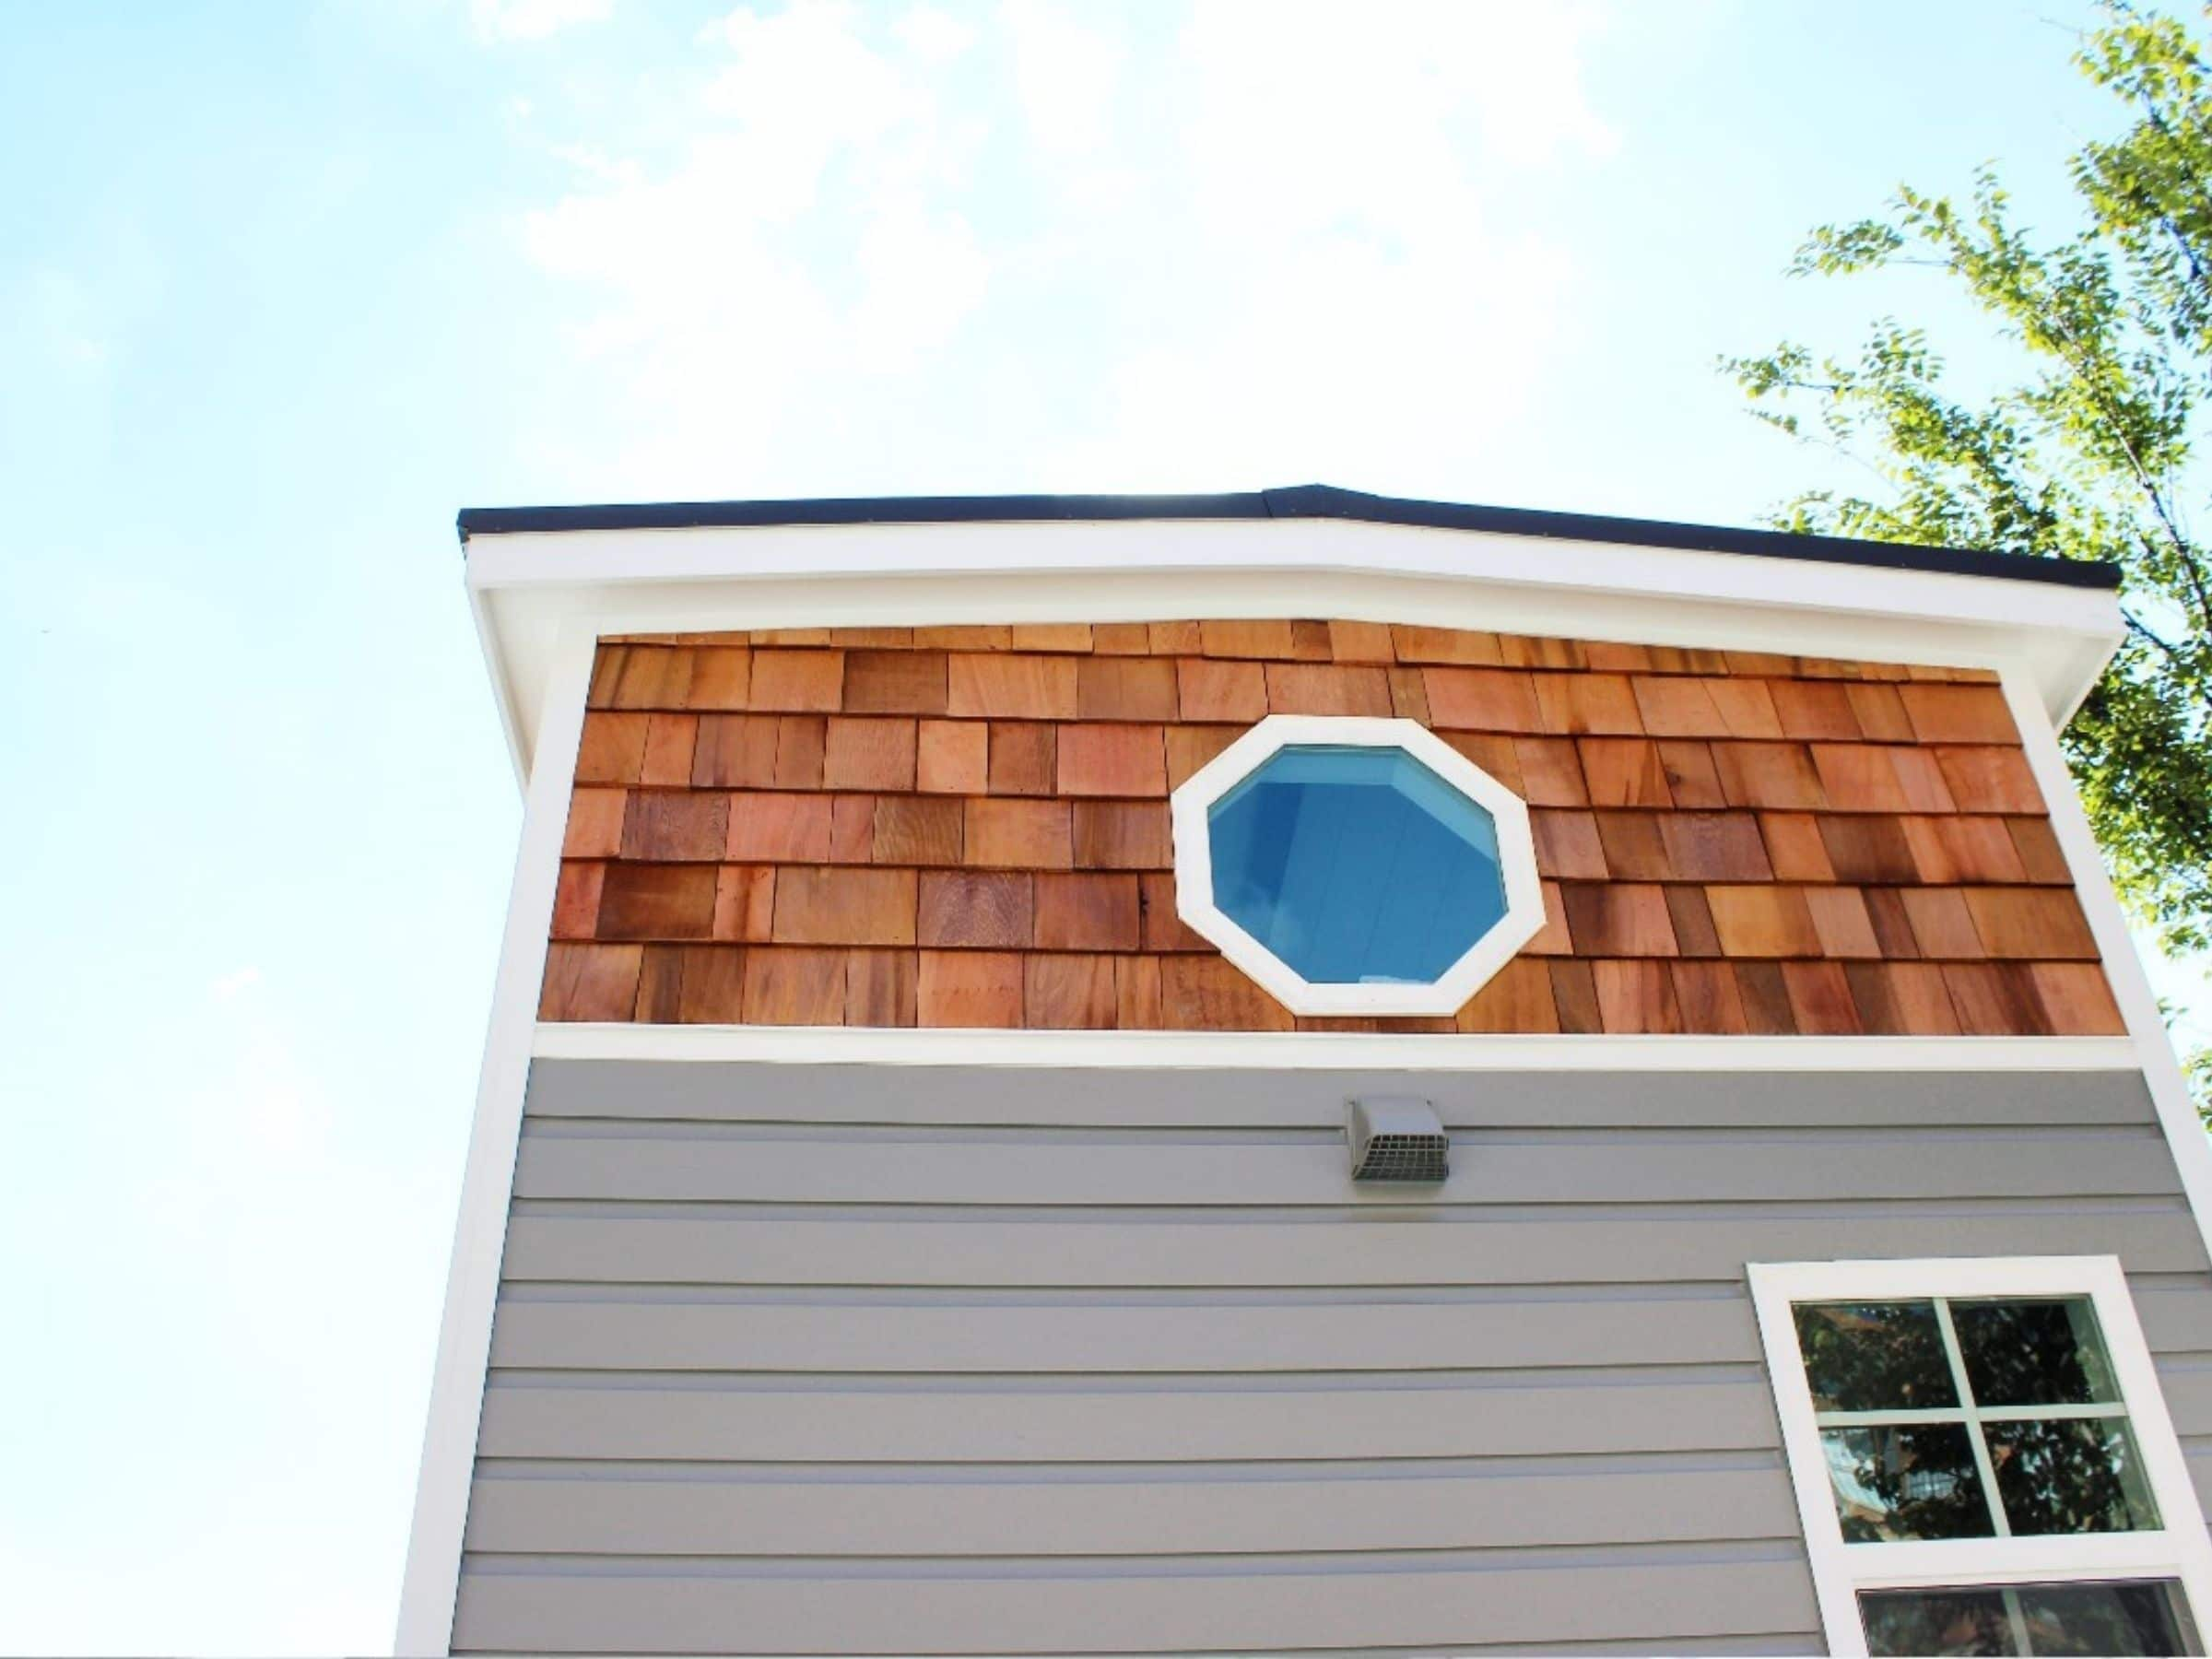 Octagon shaped window in wood siding on back of tiny home